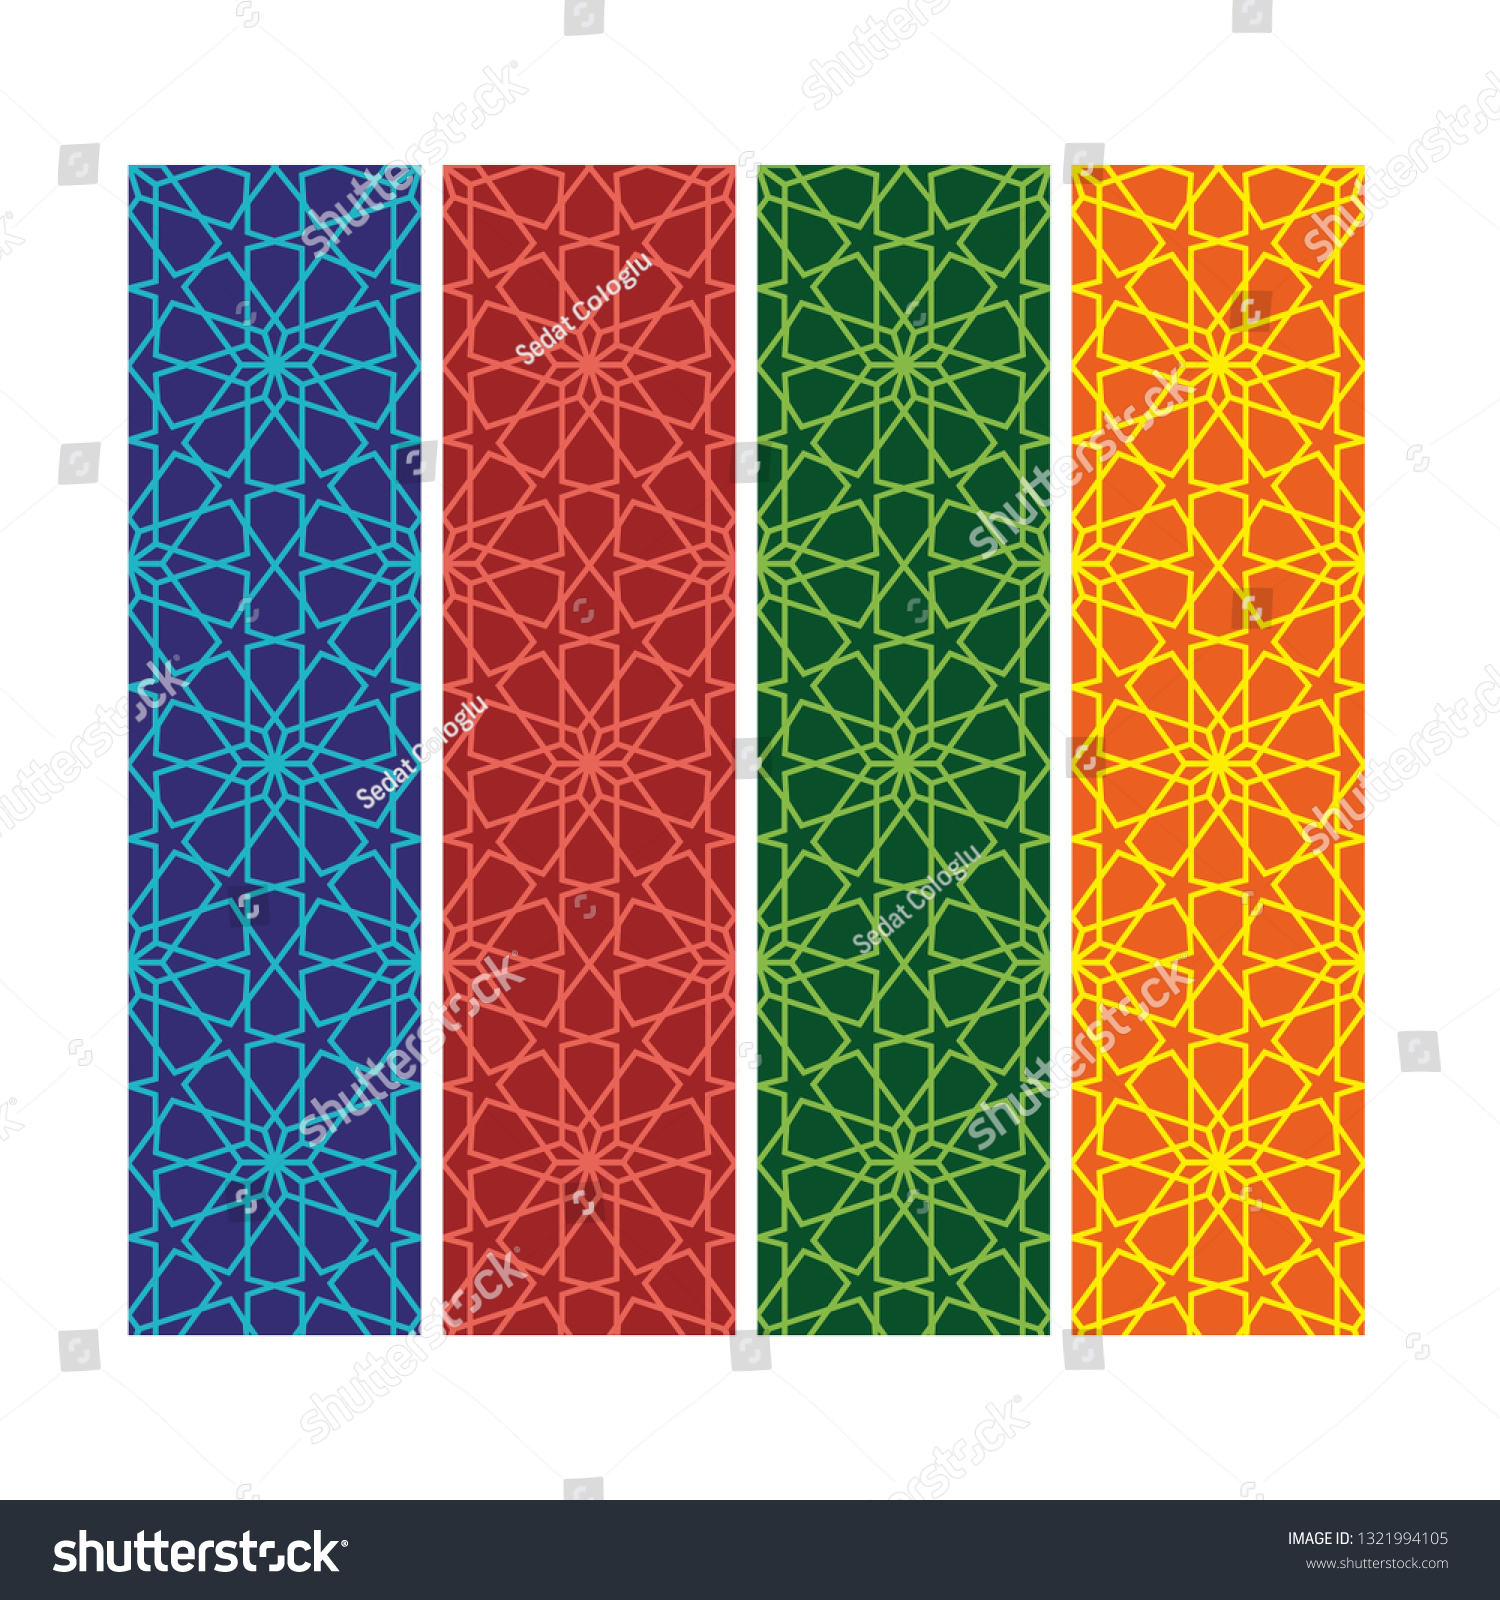 stock-vector-vector-bookmark-cards-ottoman-motif-style-it-can-be-used-as-wall-board-banner-icon-wallpaper-1321994105